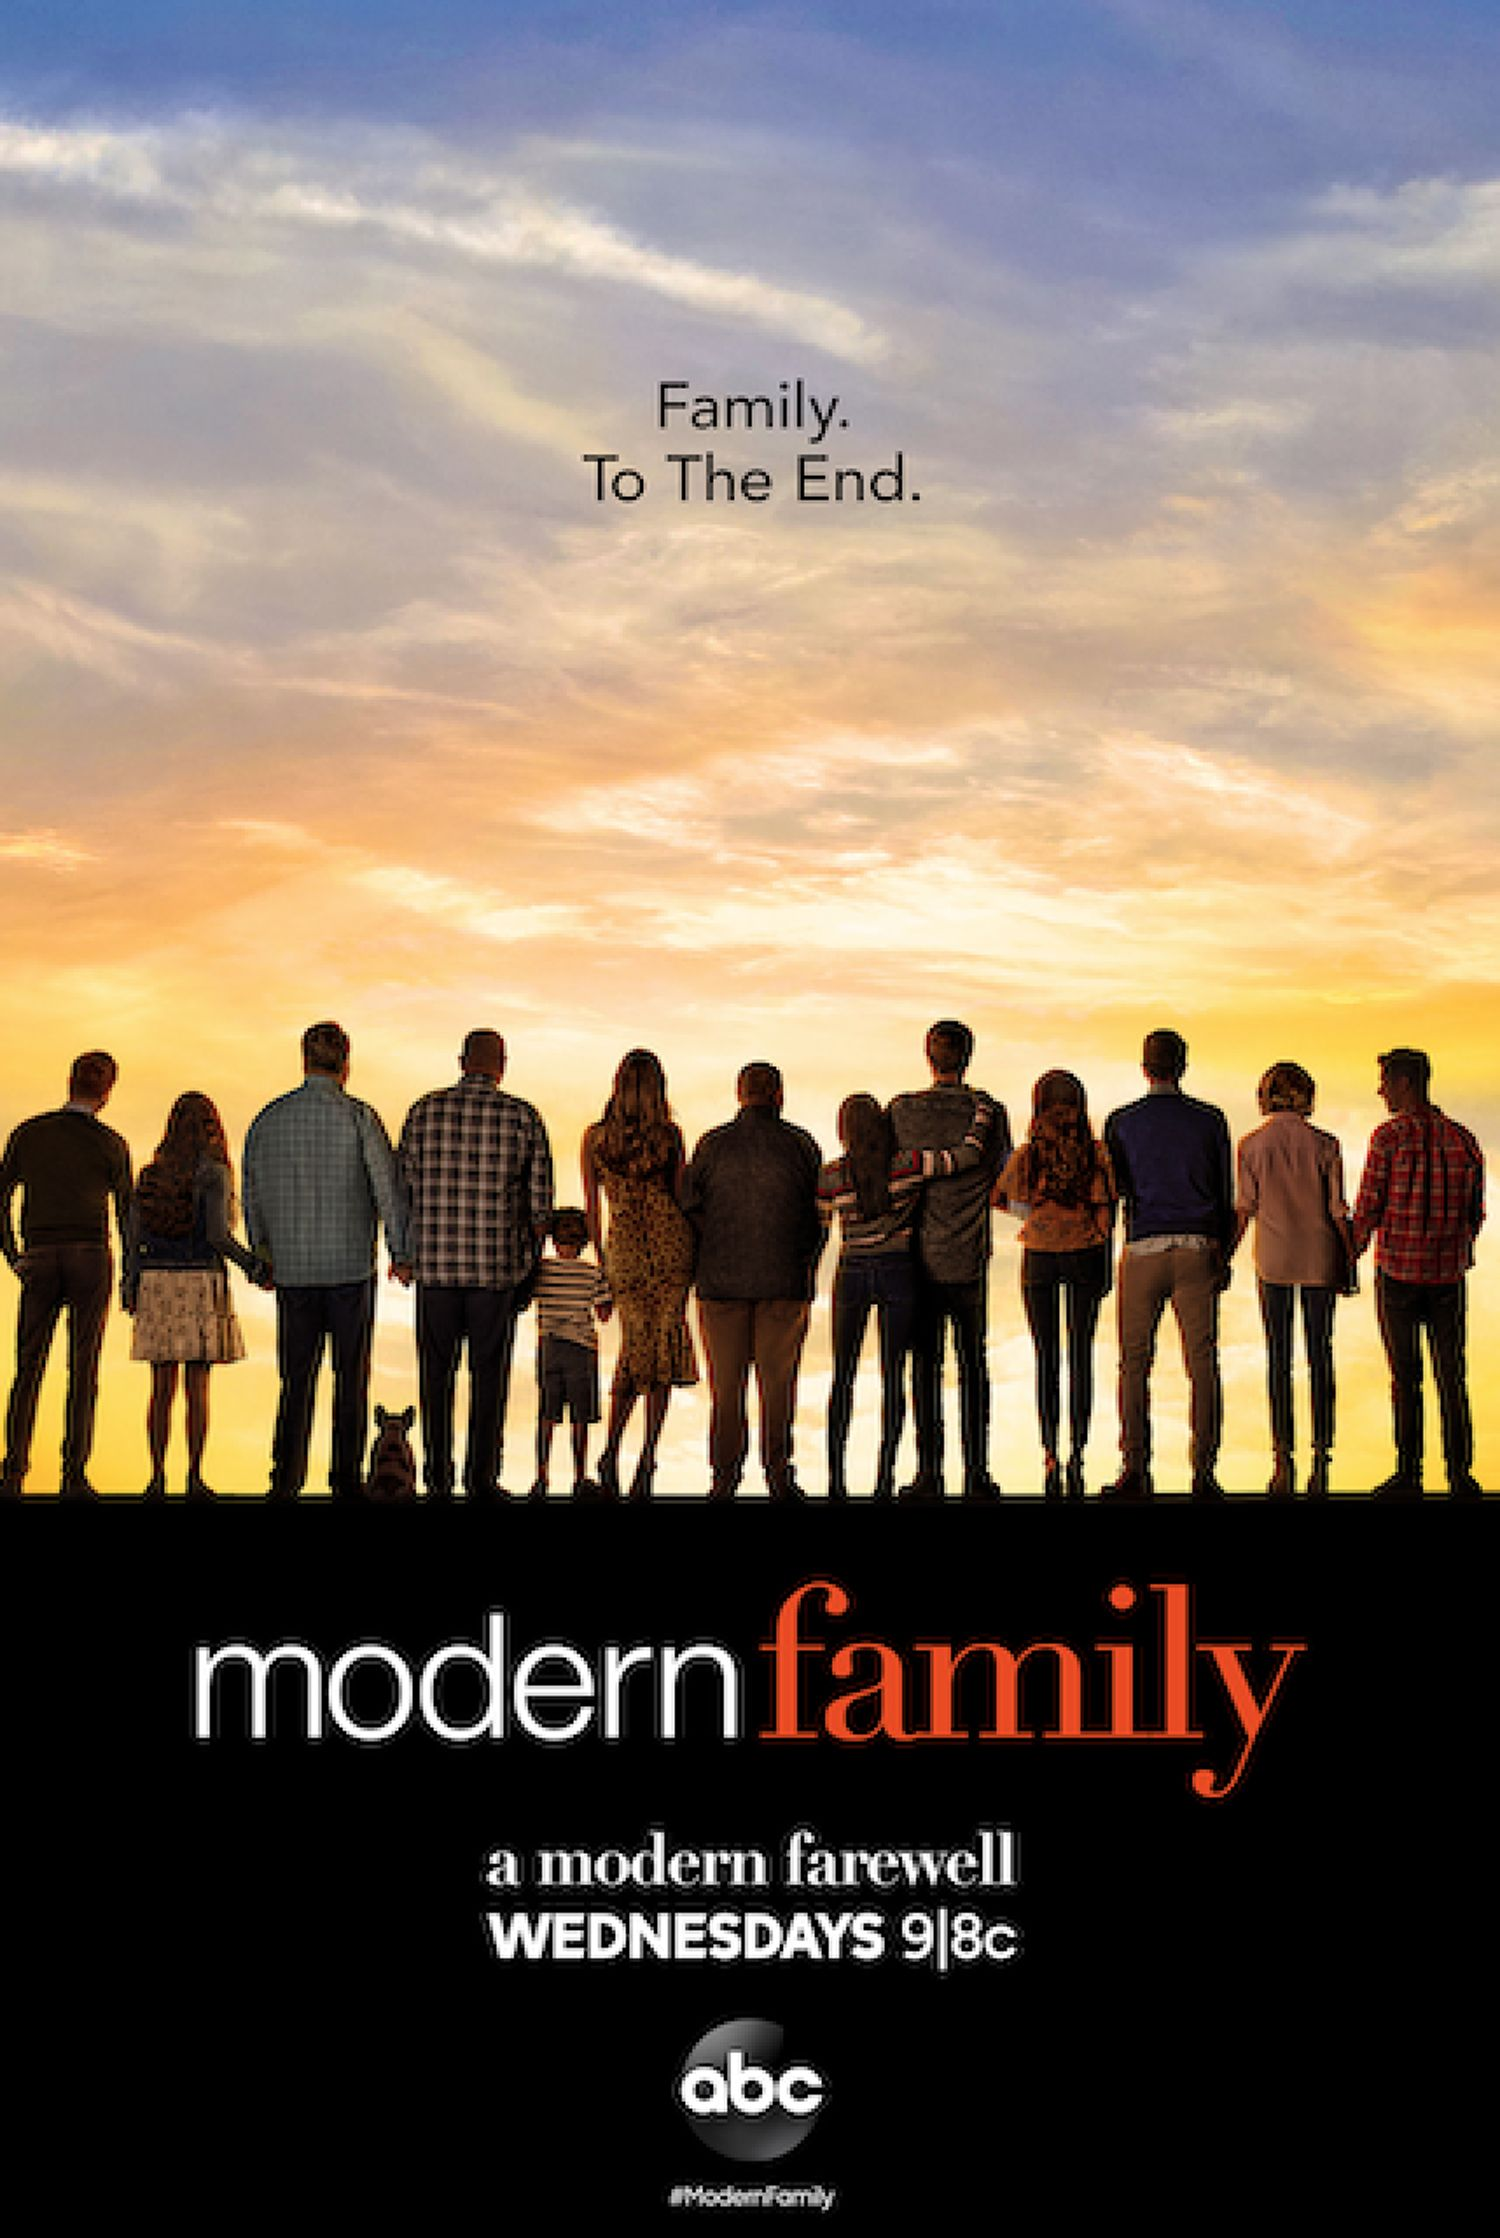 Abc S Promotional Photo For Modern Family S Final Episodes Will Tug At Your Heart Strings In 2020 Modern Family Tv Show Modern Family Modern Family Season 1